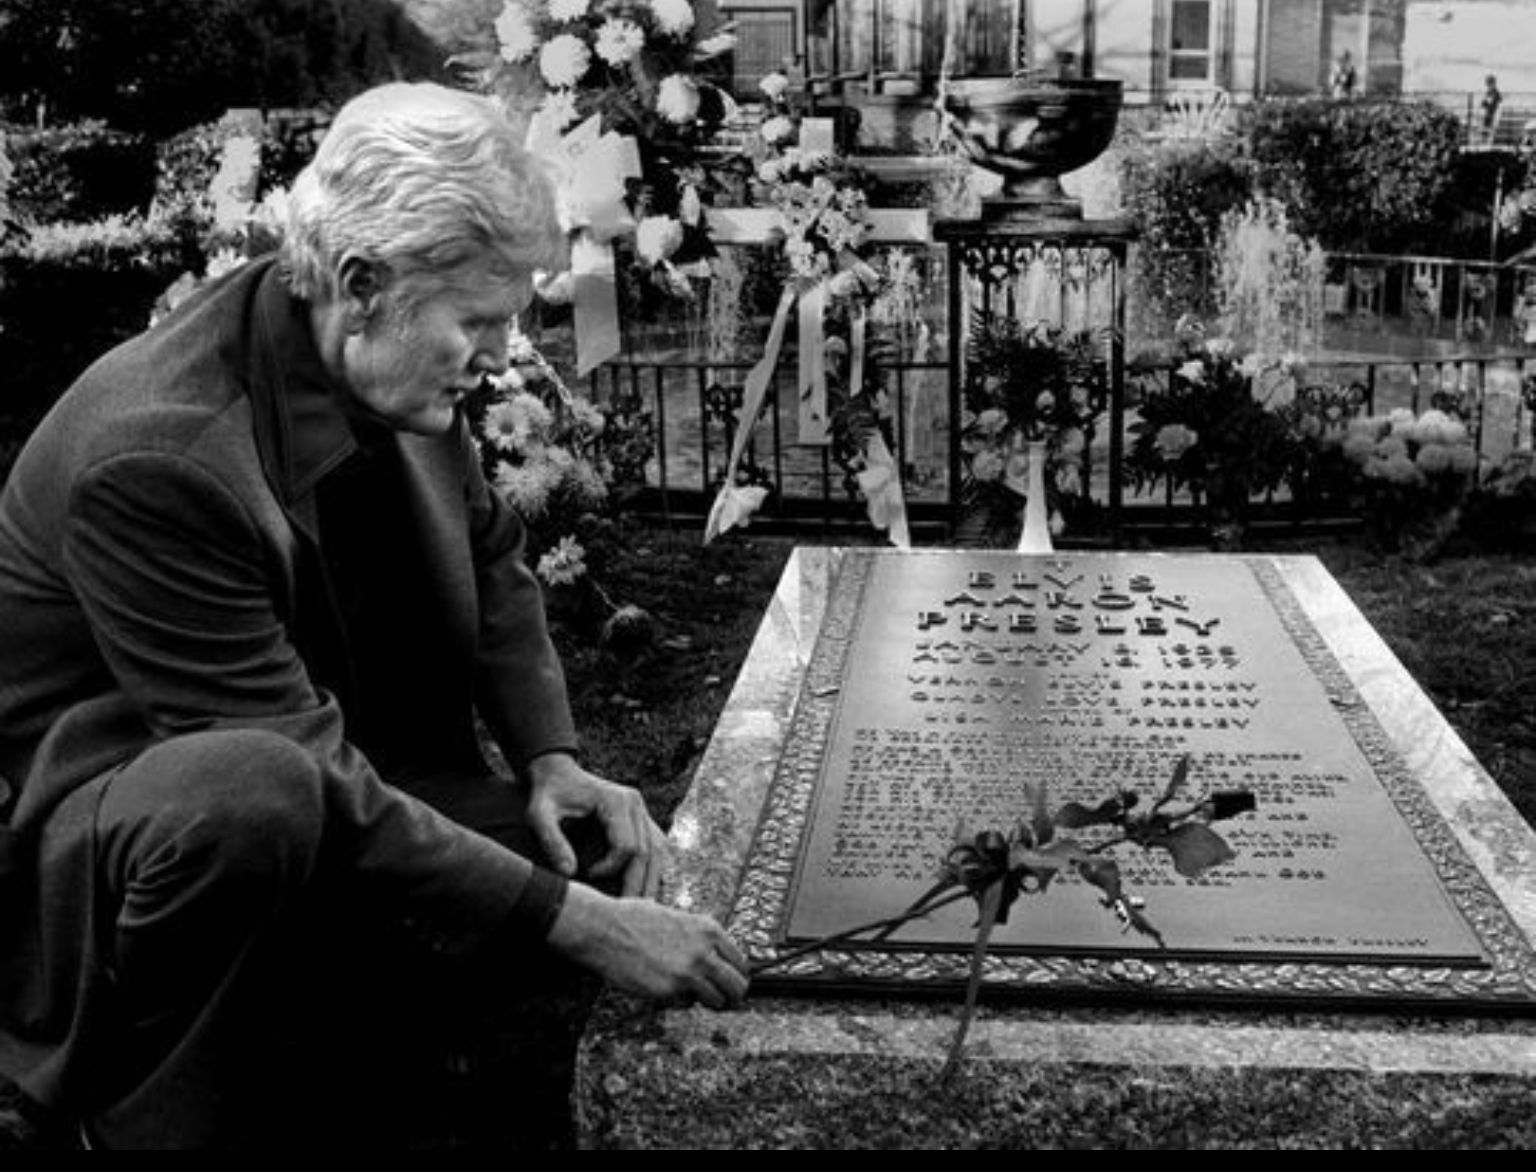 Vernon Presley, Elvis' father, places a rose on his son's ...